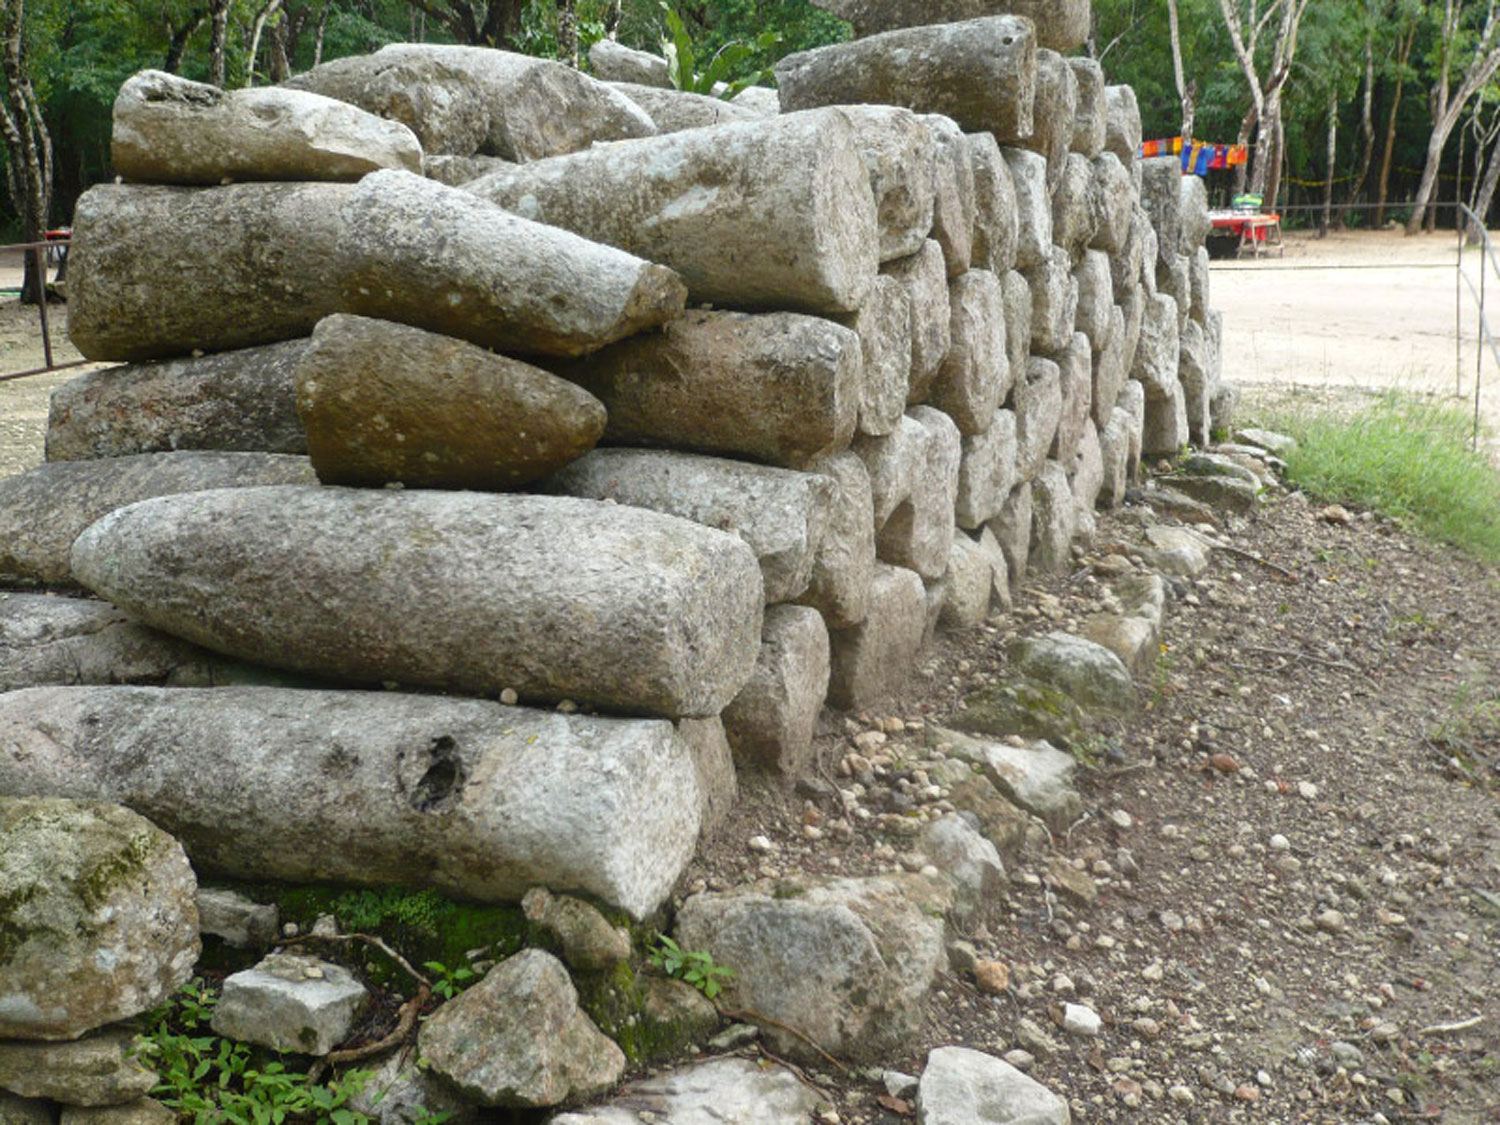 Stacked phalluses in   Chichén Itzá